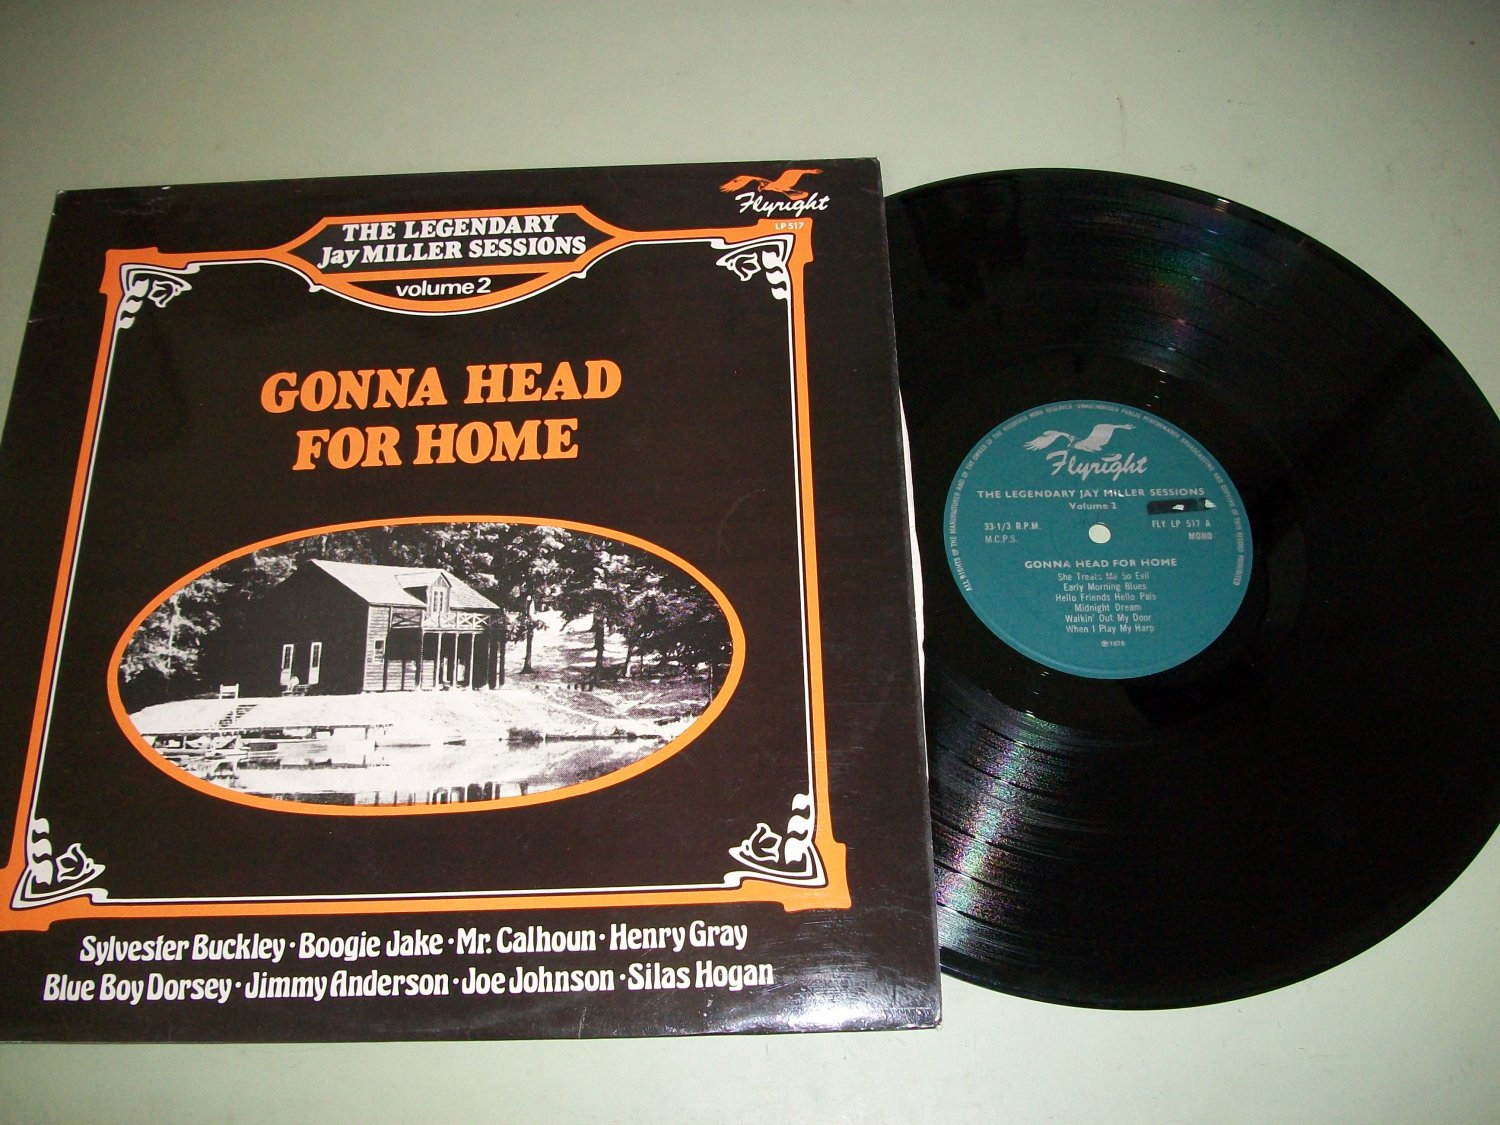 Jay Miller Sessions Vol. 2 - Gonna Head For Home - FLYWRIGHT 517 Blues Record LP